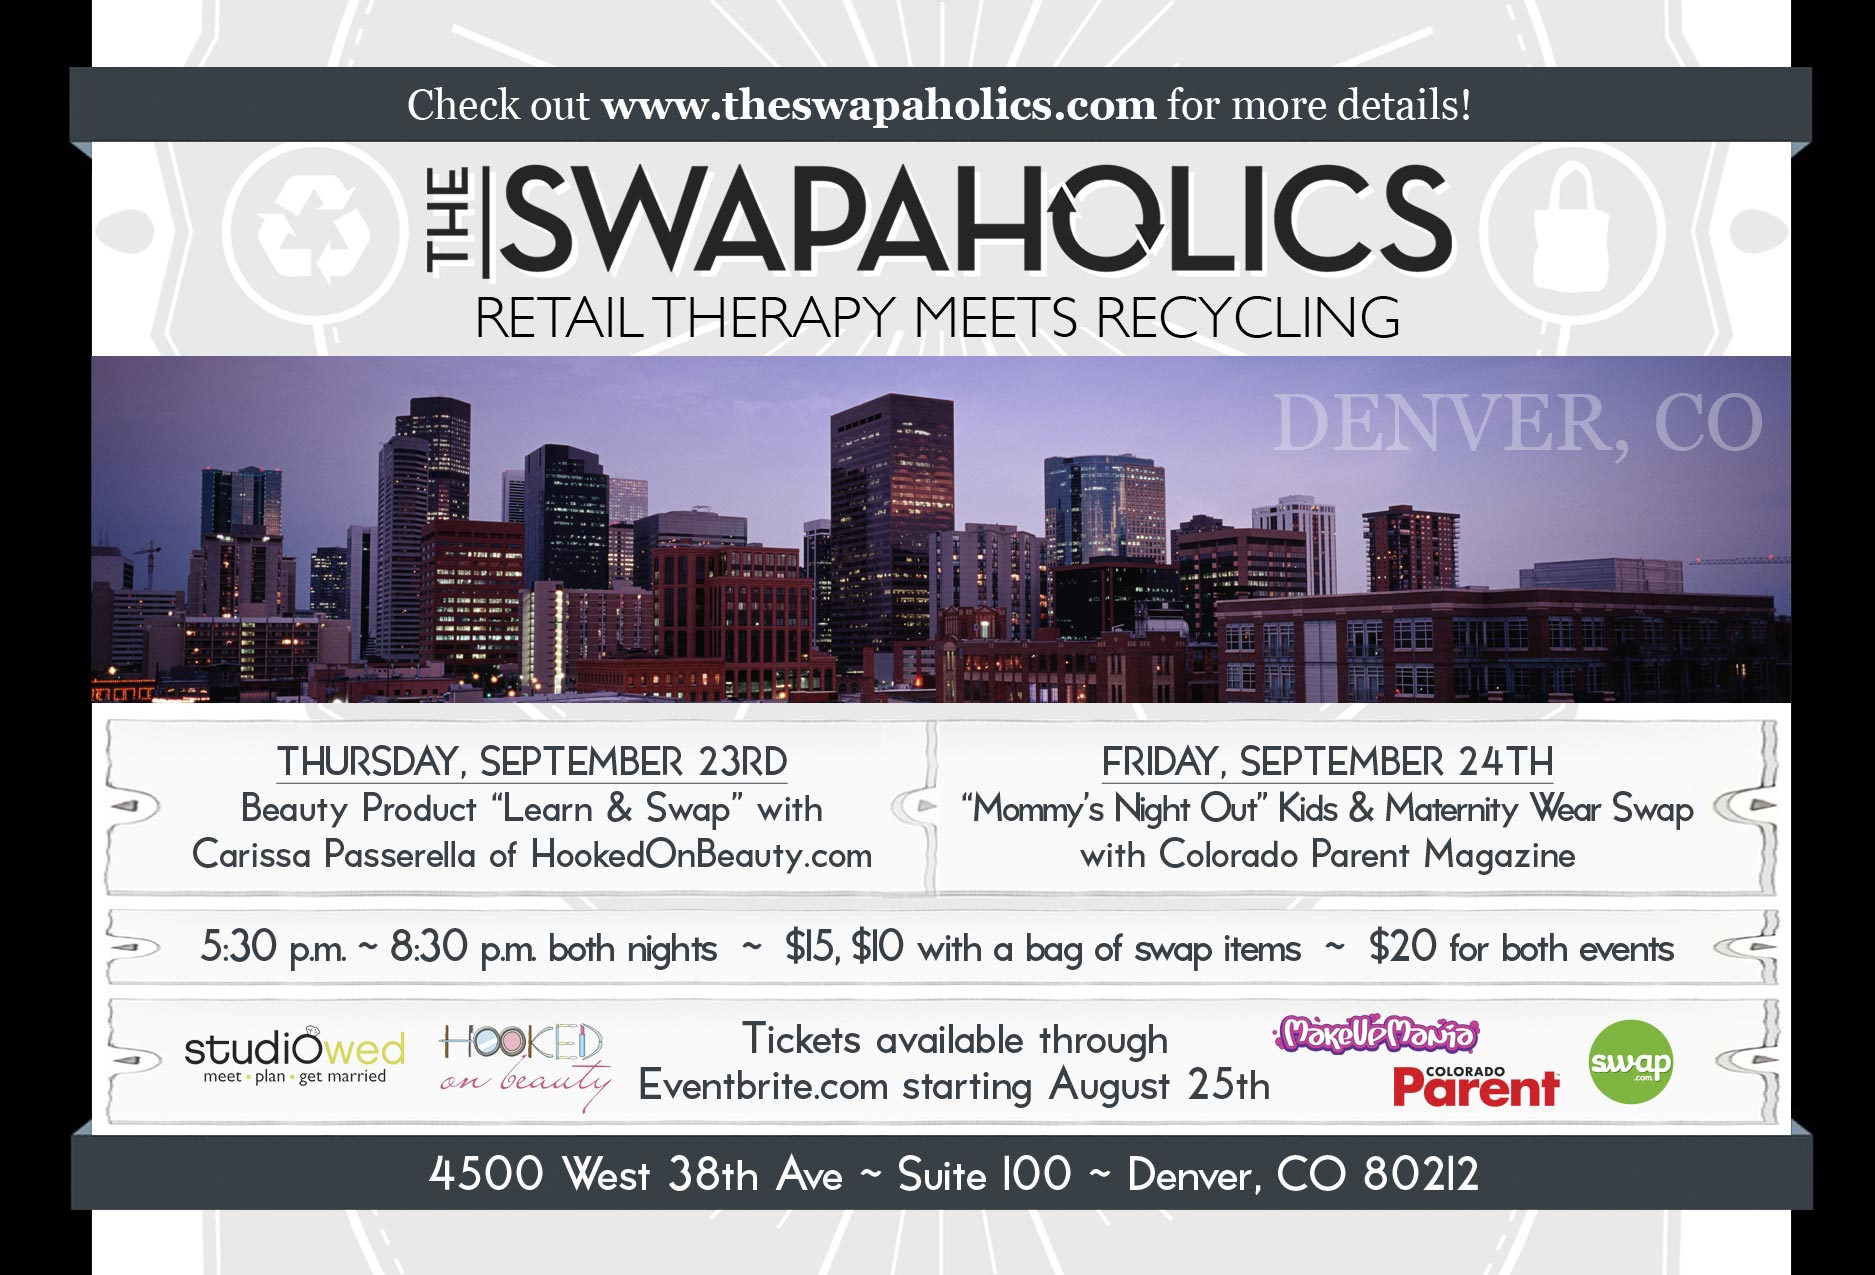 Swapaholics Denver Swaps September 2010